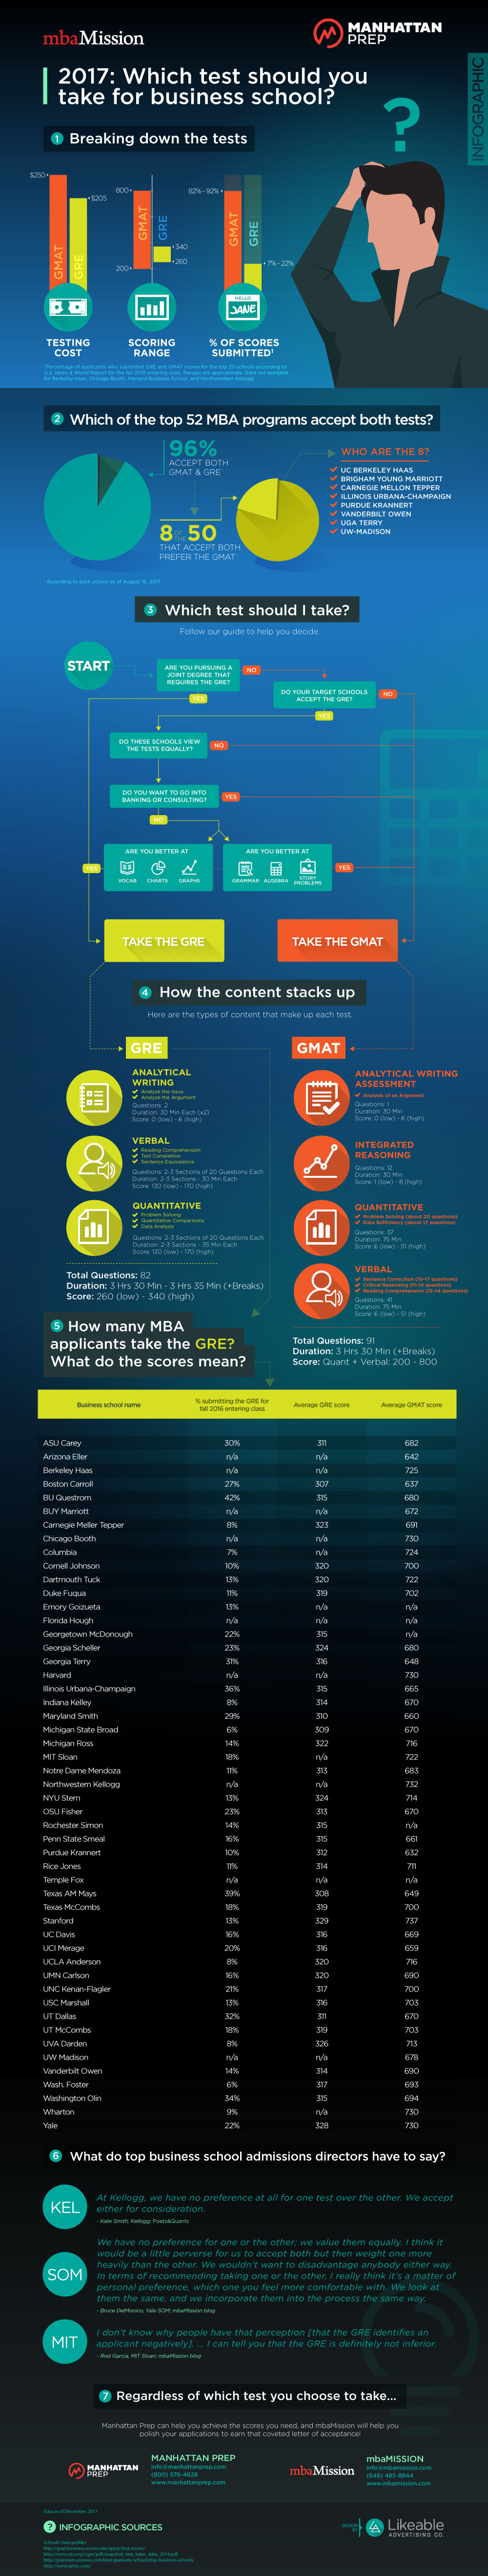 Manhattan Prep GMAT Blog - mbaMission and Manhattan Prep's GMAT vs. GRE Infographic by mbaMission